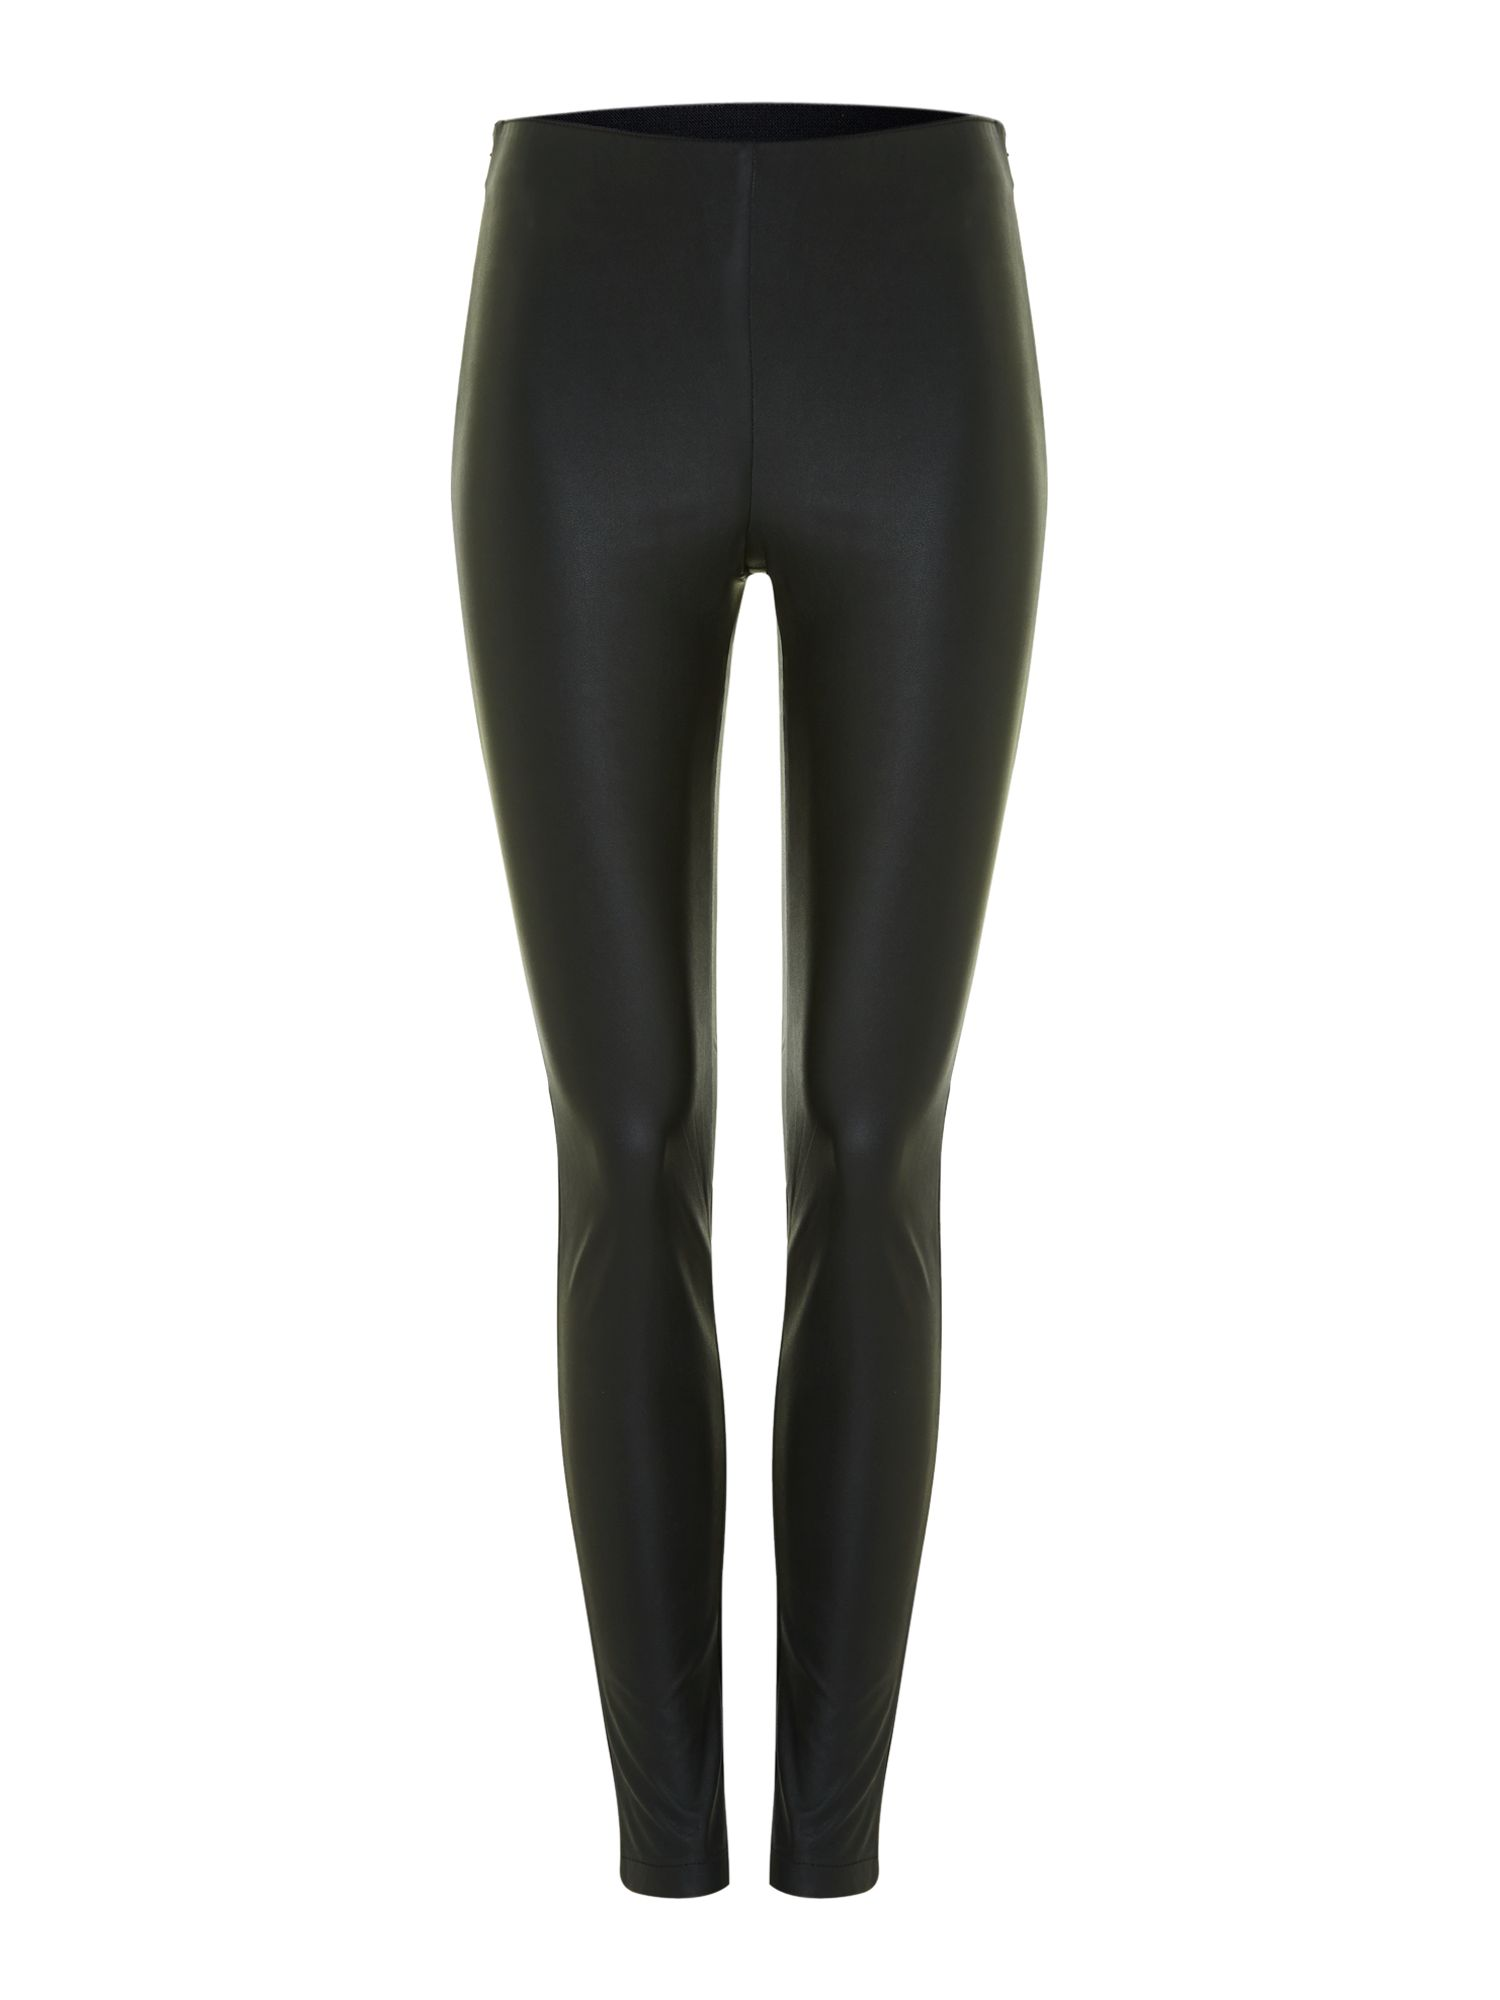 Aniela stretch leggings